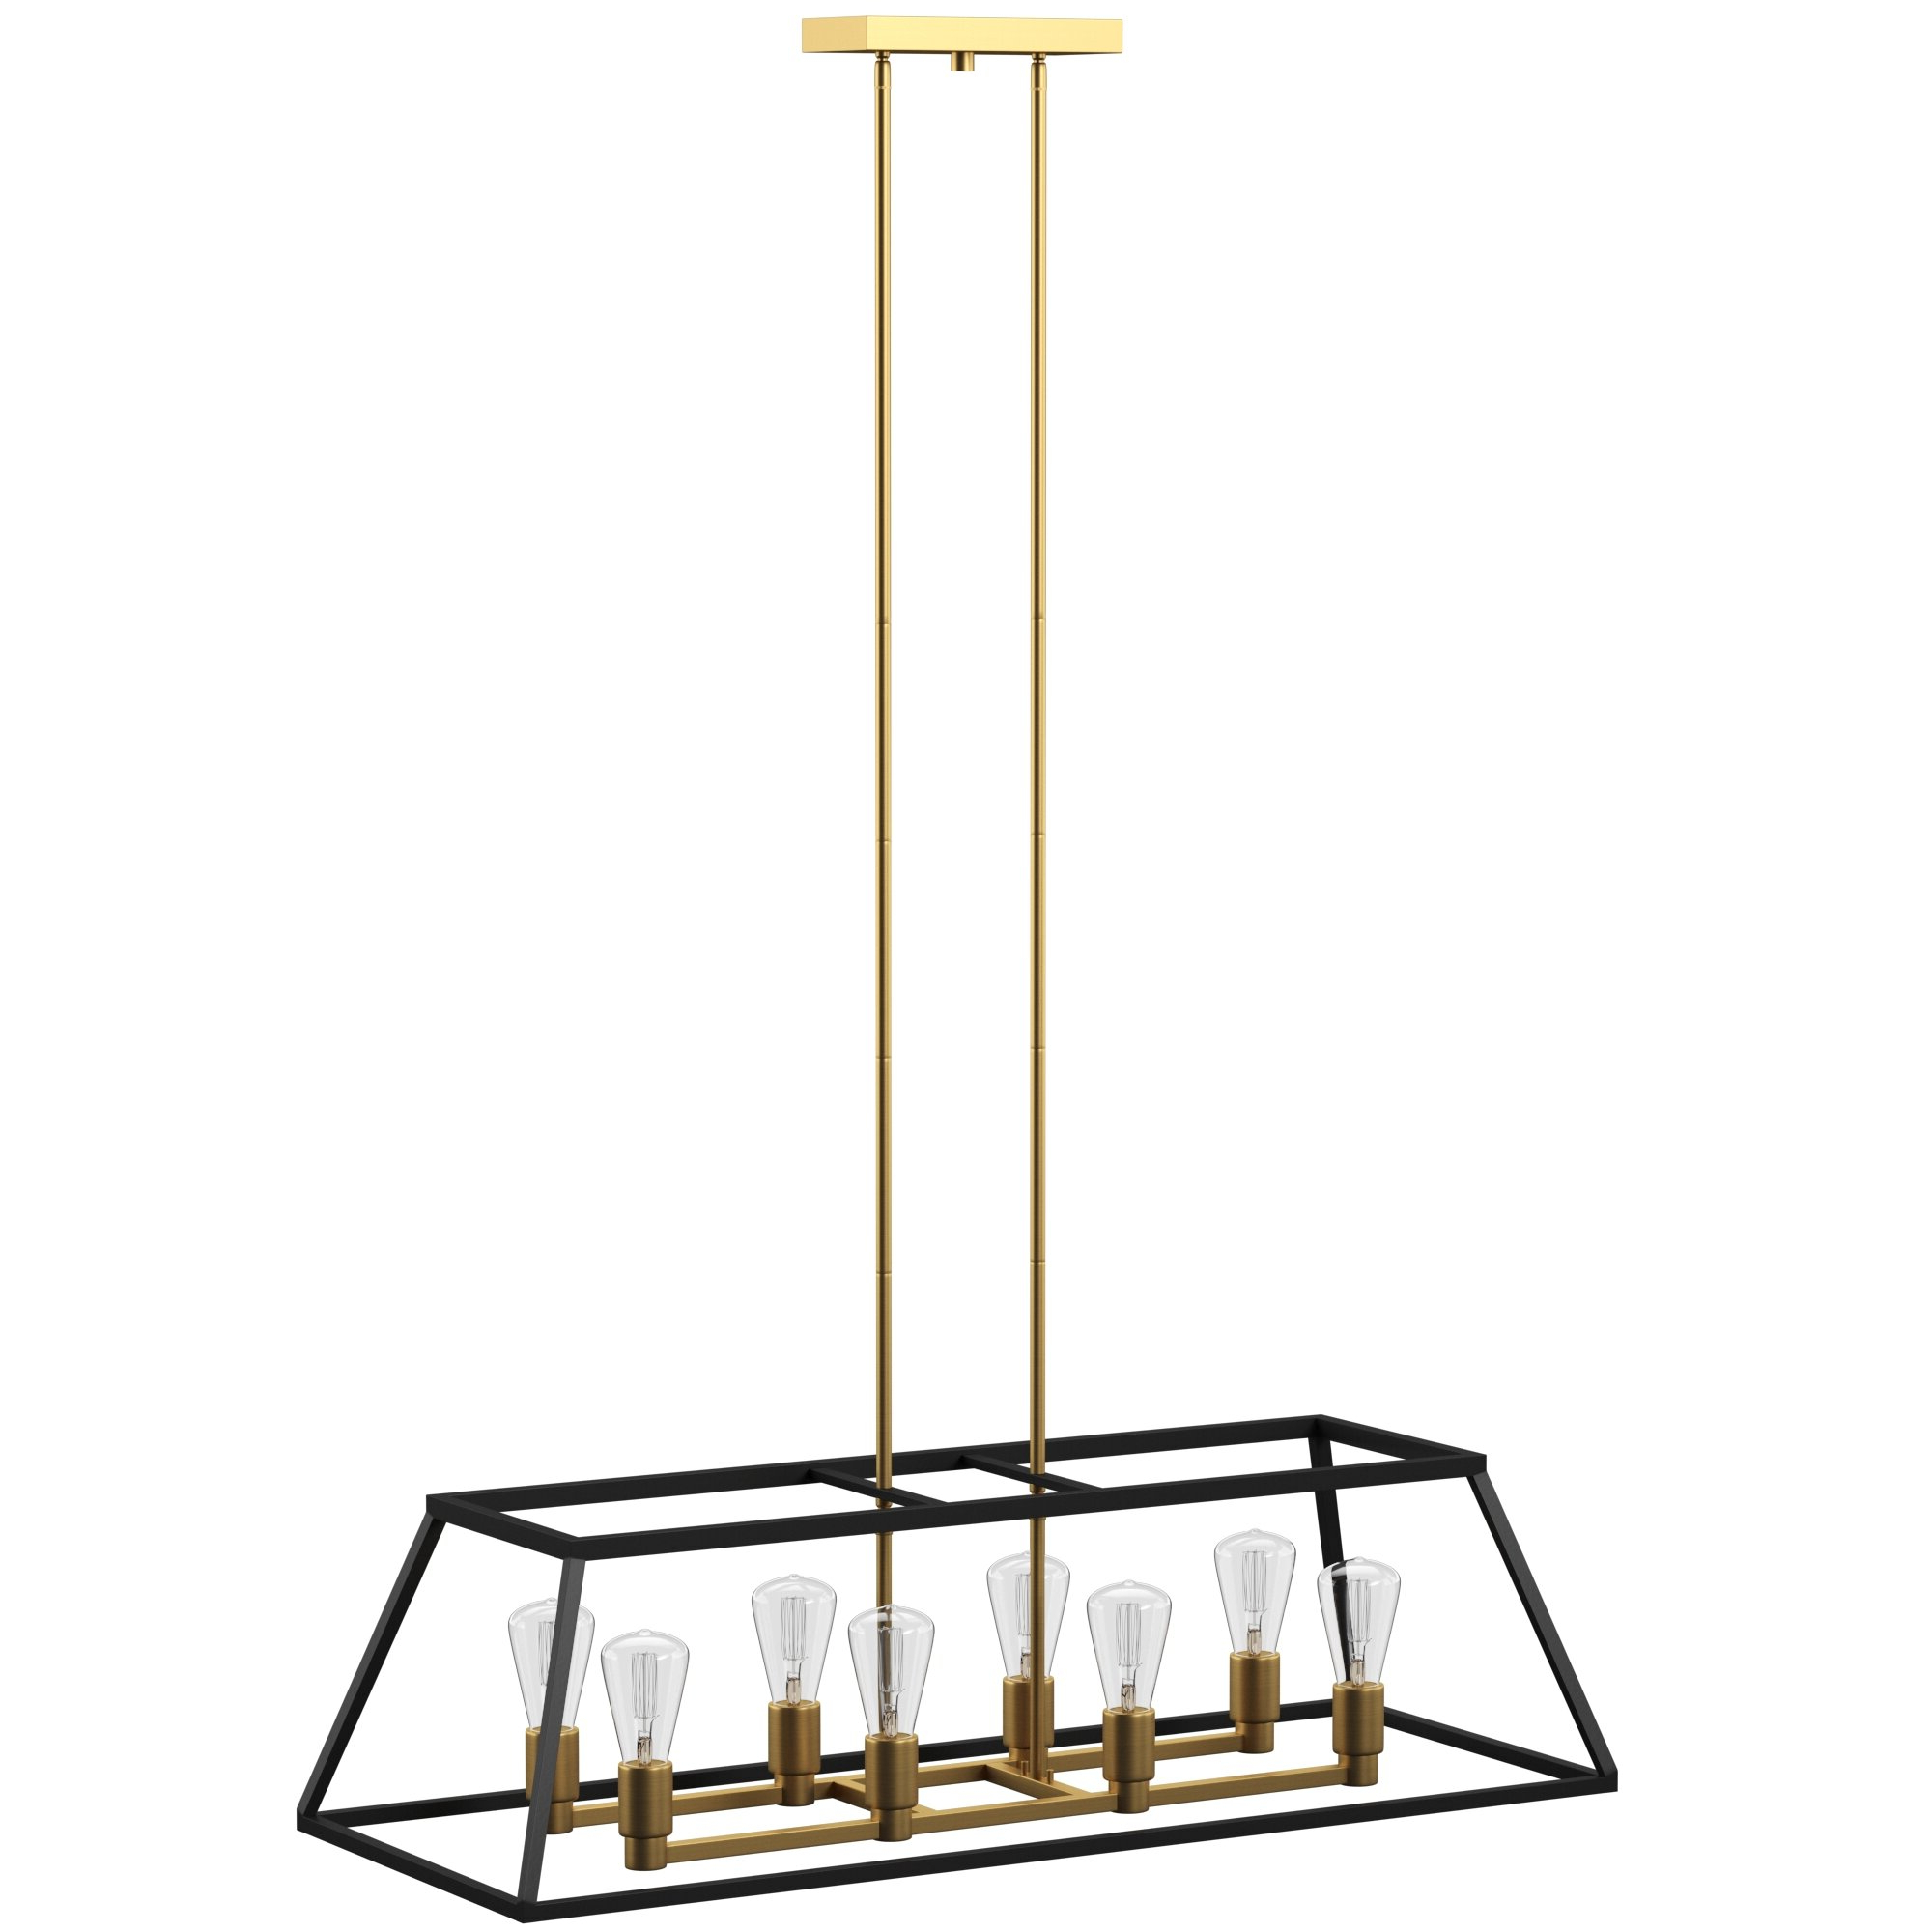 Best And Newest Shisler 8 Light Kitchen Island Linear Pendant Pertaining To Sousa 4 Light Kitchen Island Linear Pendants (View 3 of 25)